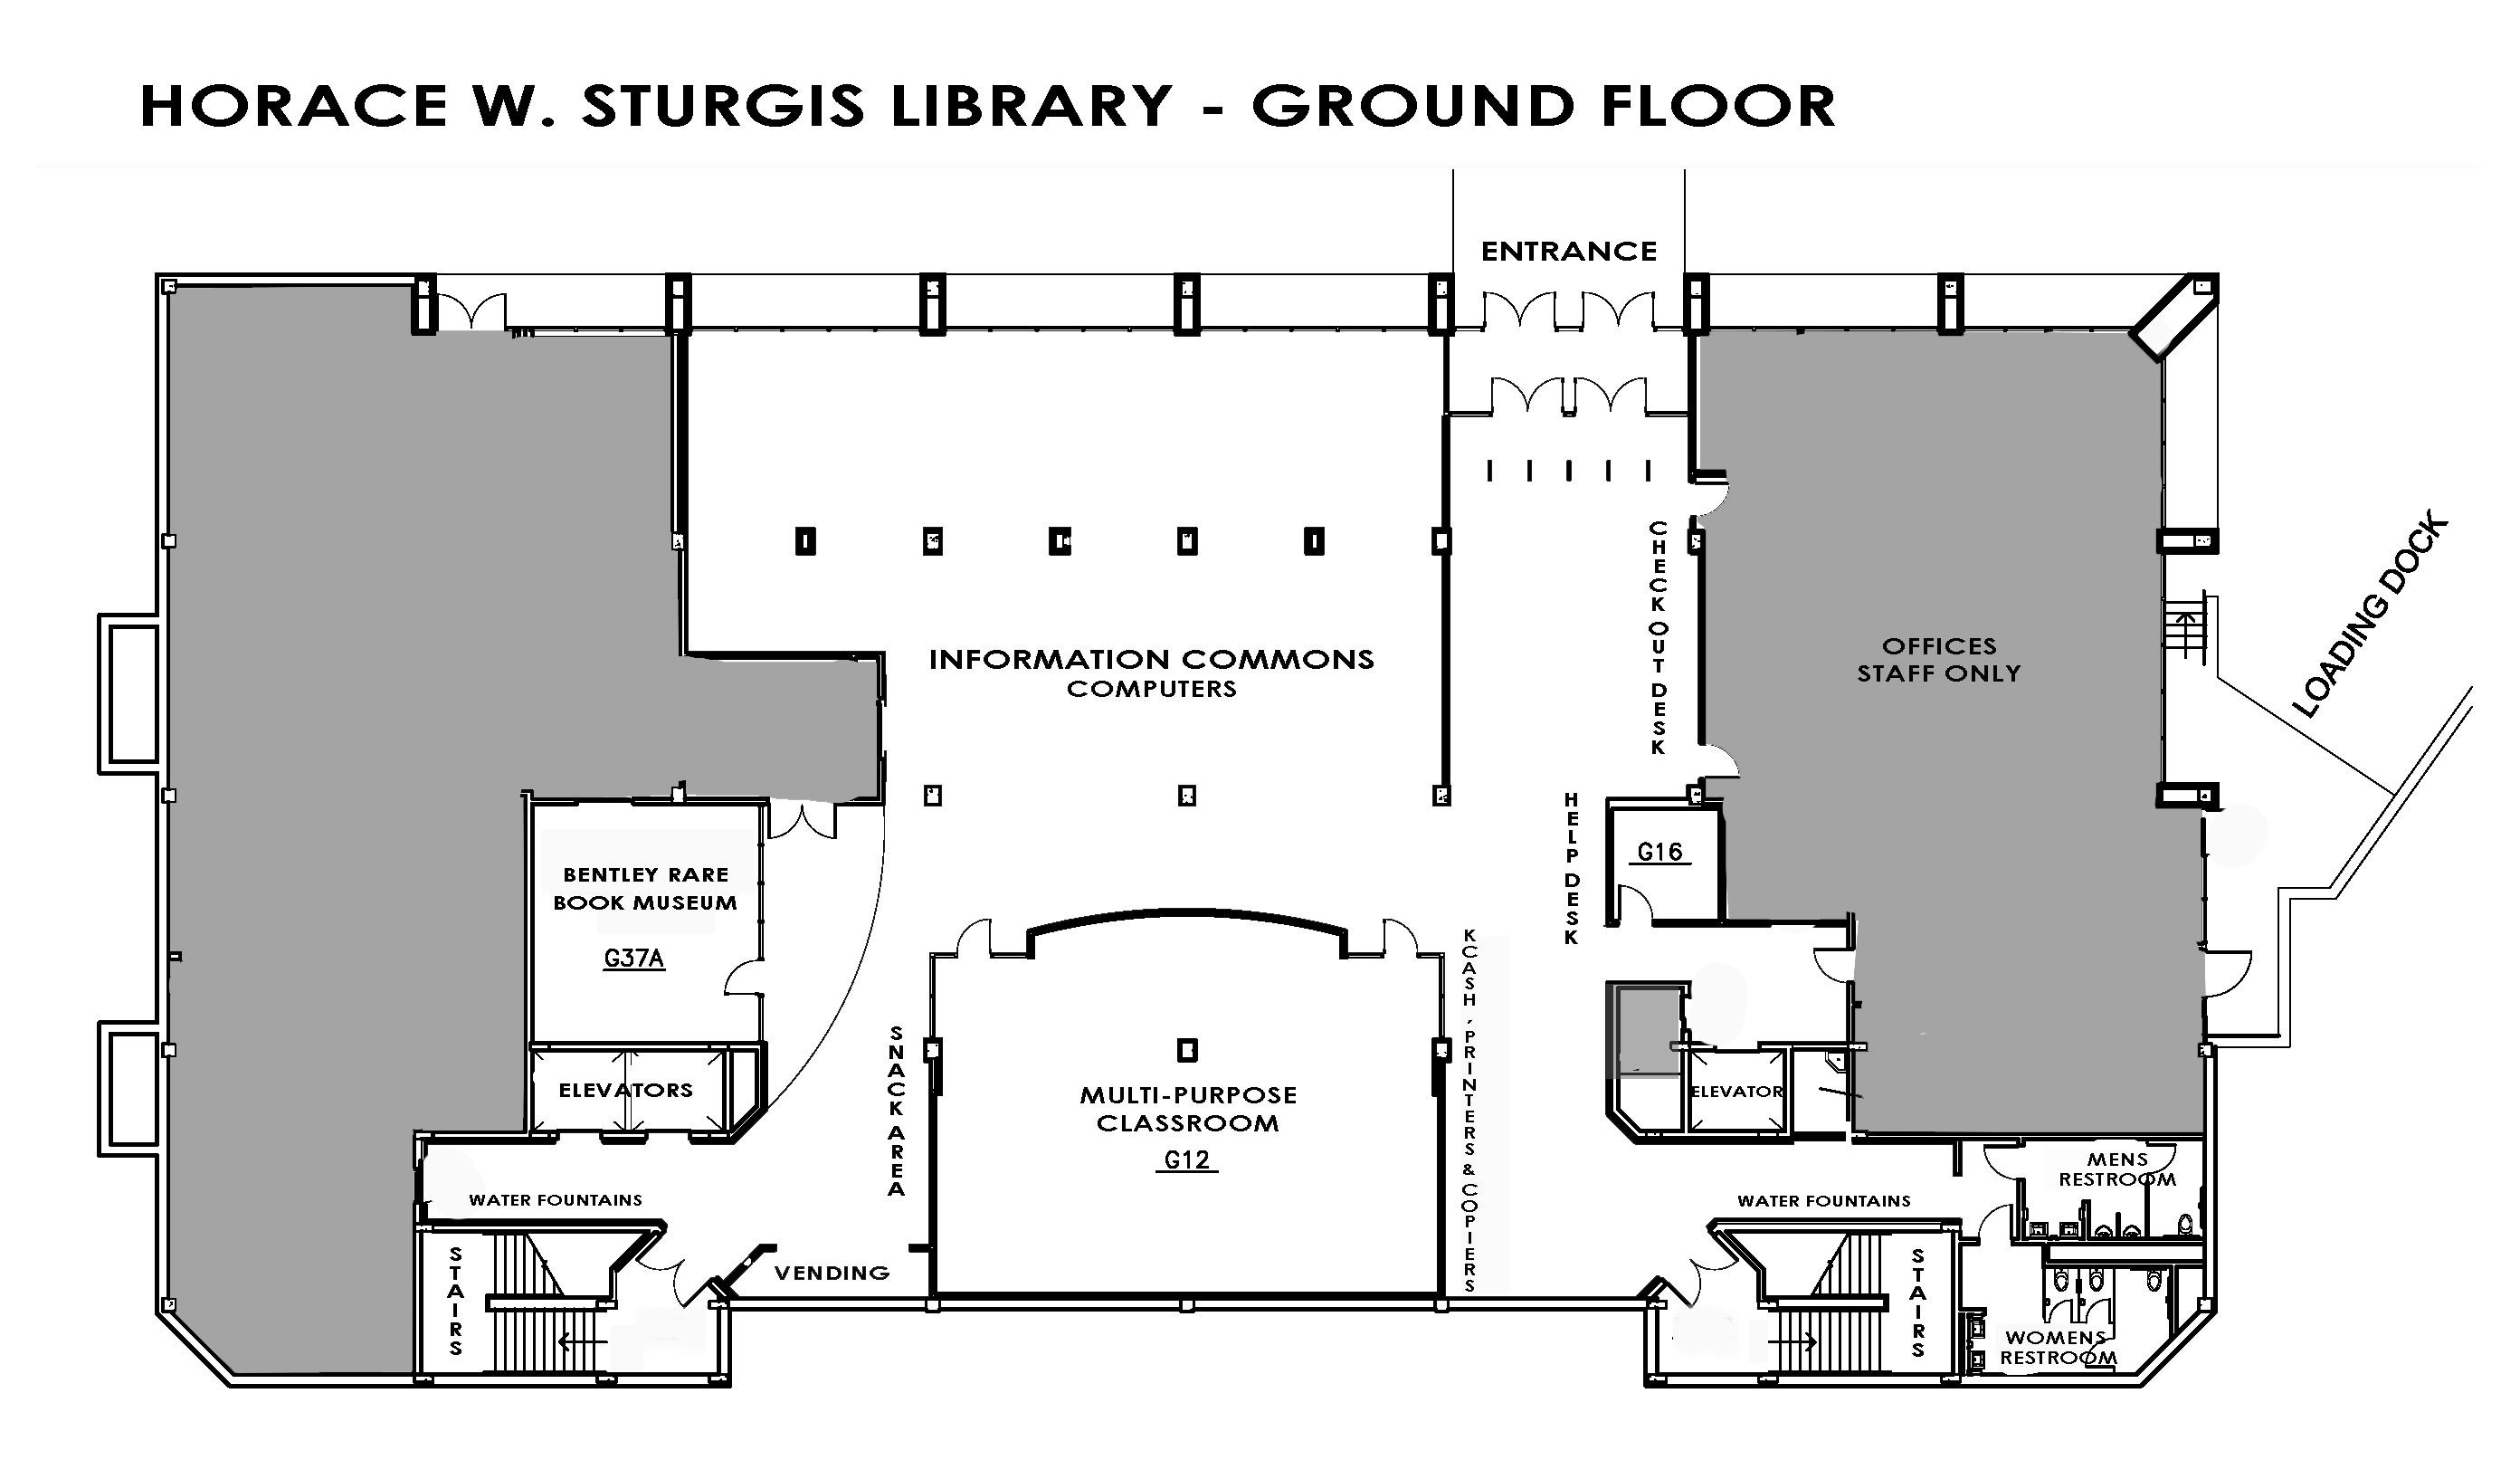 Ksu Library System Horace W Sturgis Library Kennesaw Campus